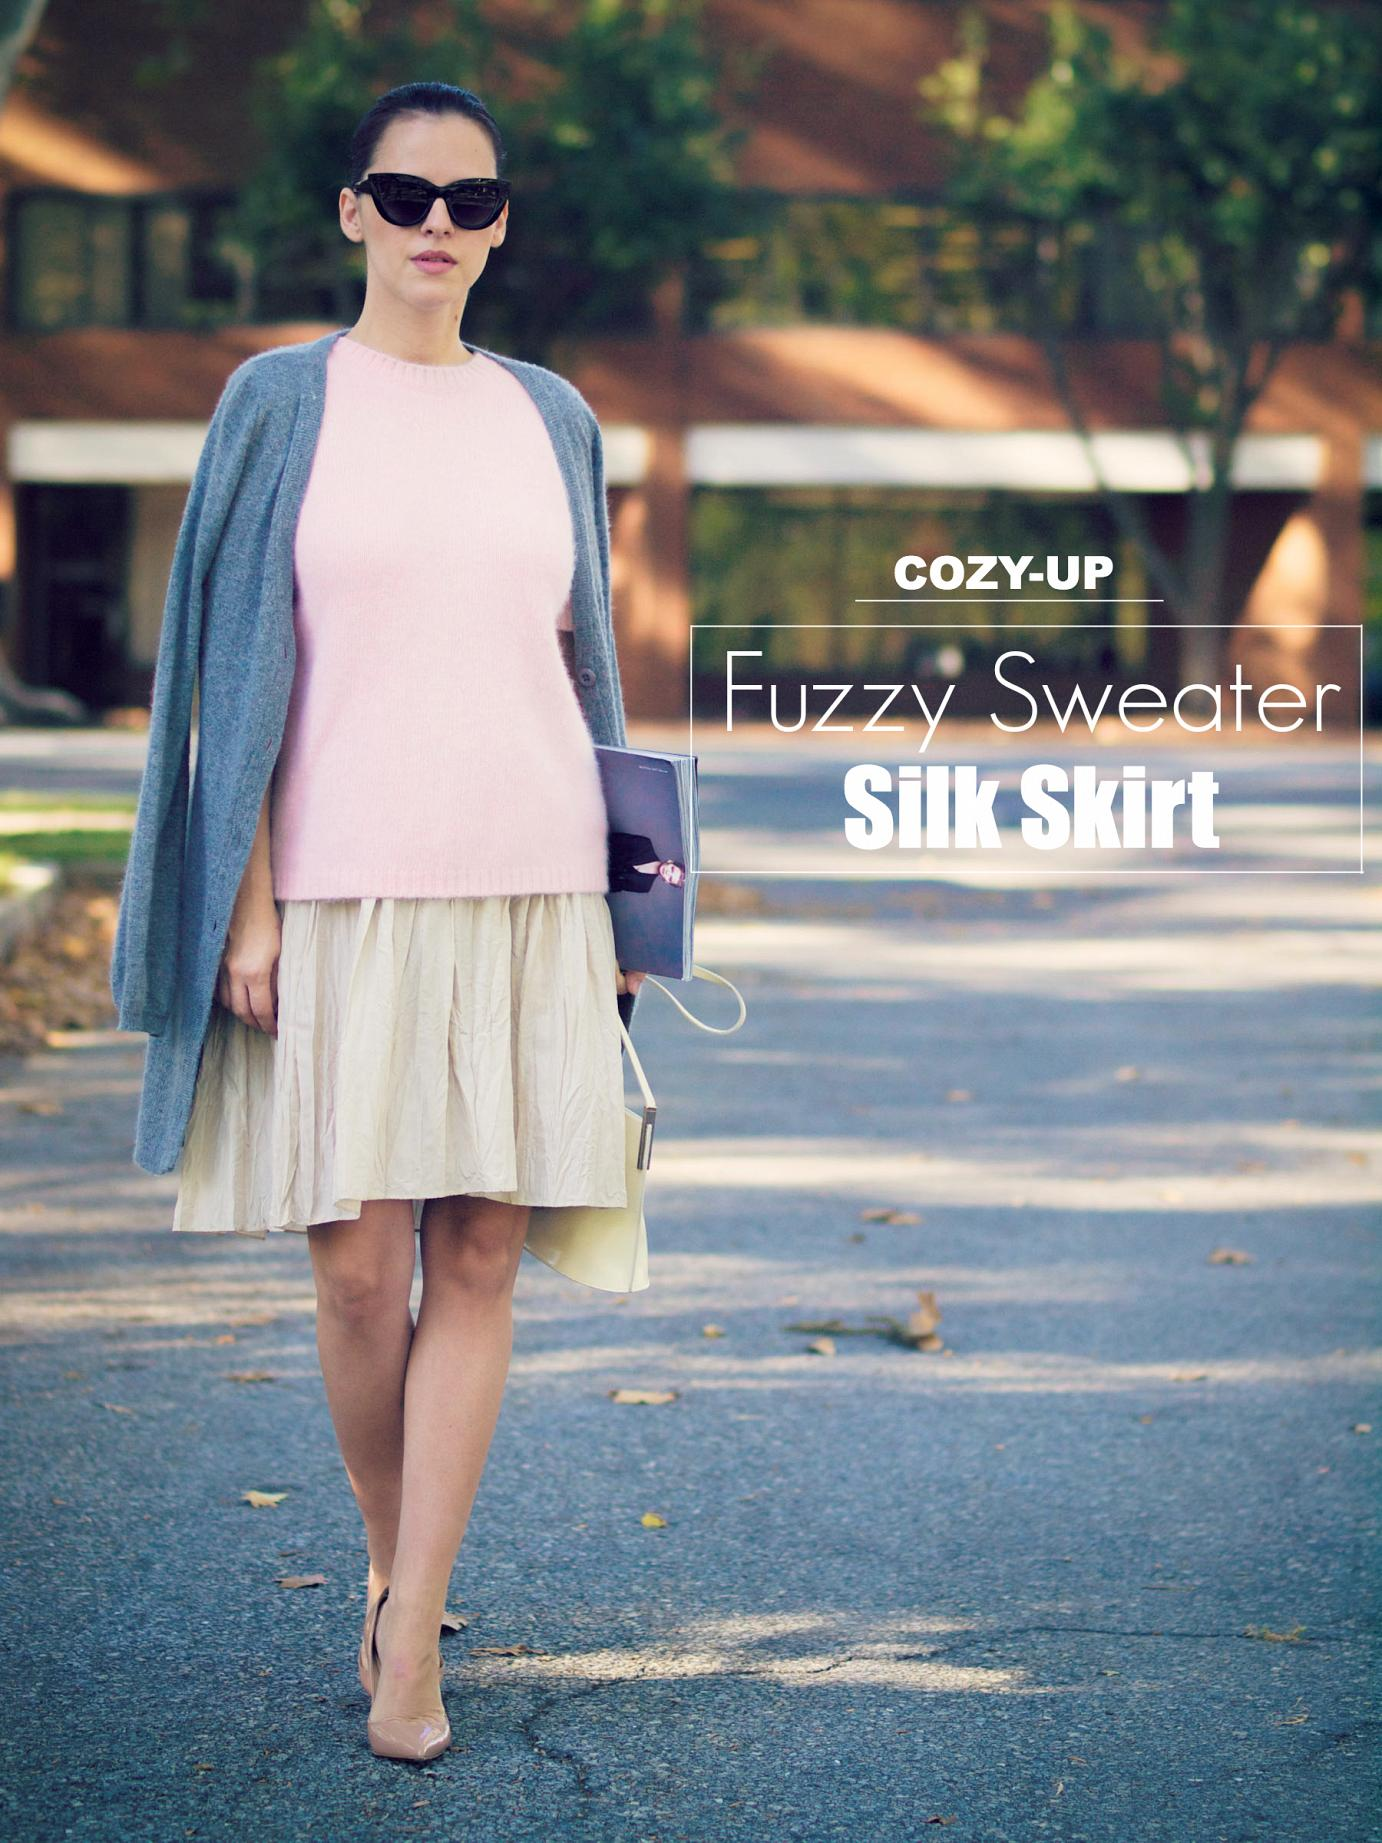 bittersweet colours, street style, fall trends, fuzzy sweater, silk skirt, christian louboutin shoes, furla bag, bcbg max azria, cardigan, pink sweater, asos sunglasses, fall mix, pastel colors, pleated skirt,